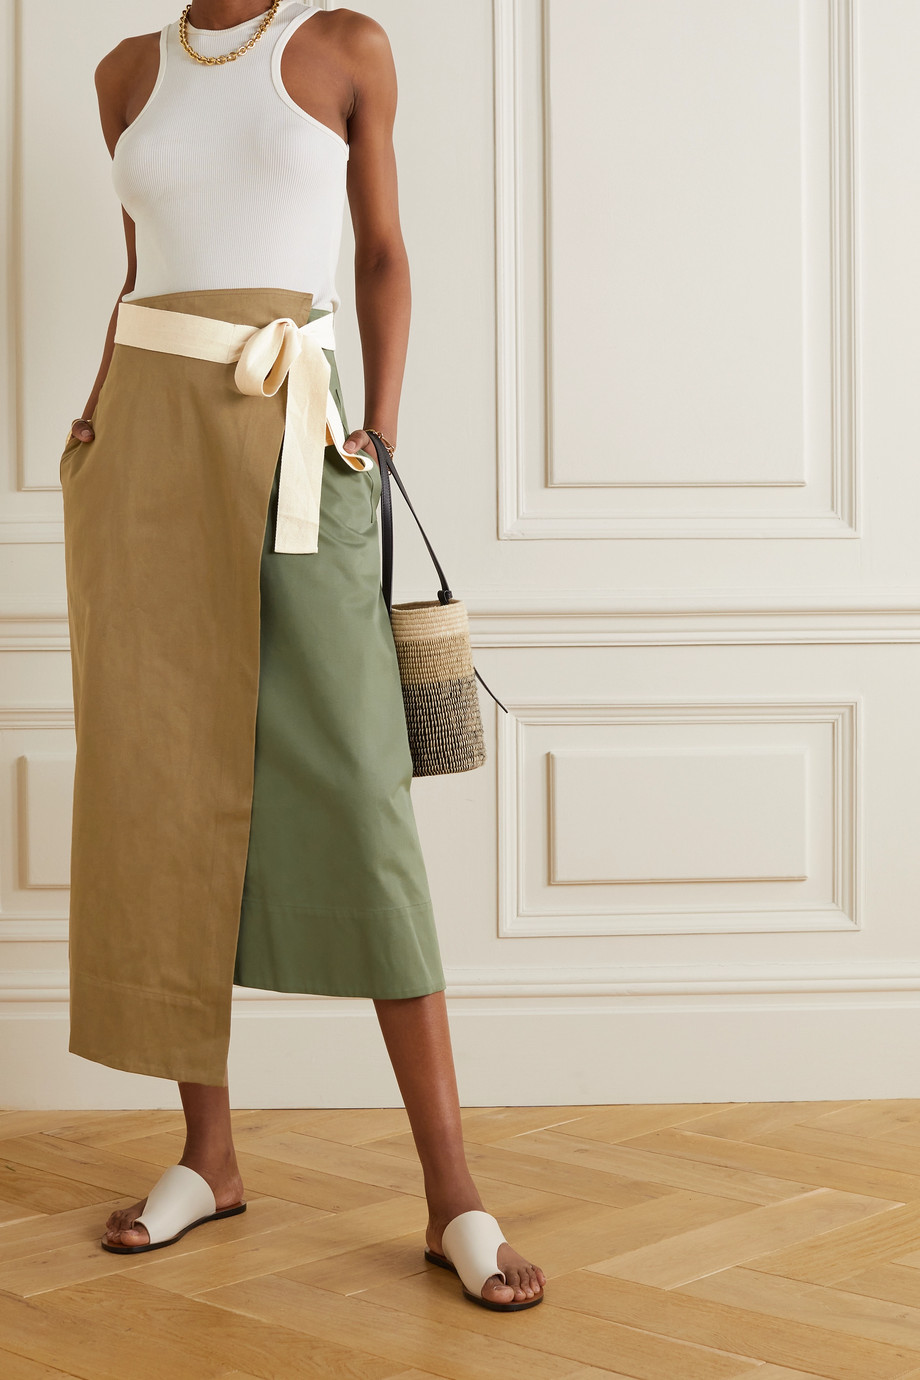 ARTCLUB + NET SUSTAIN Rivetti asymmetric color-block cotton skirt